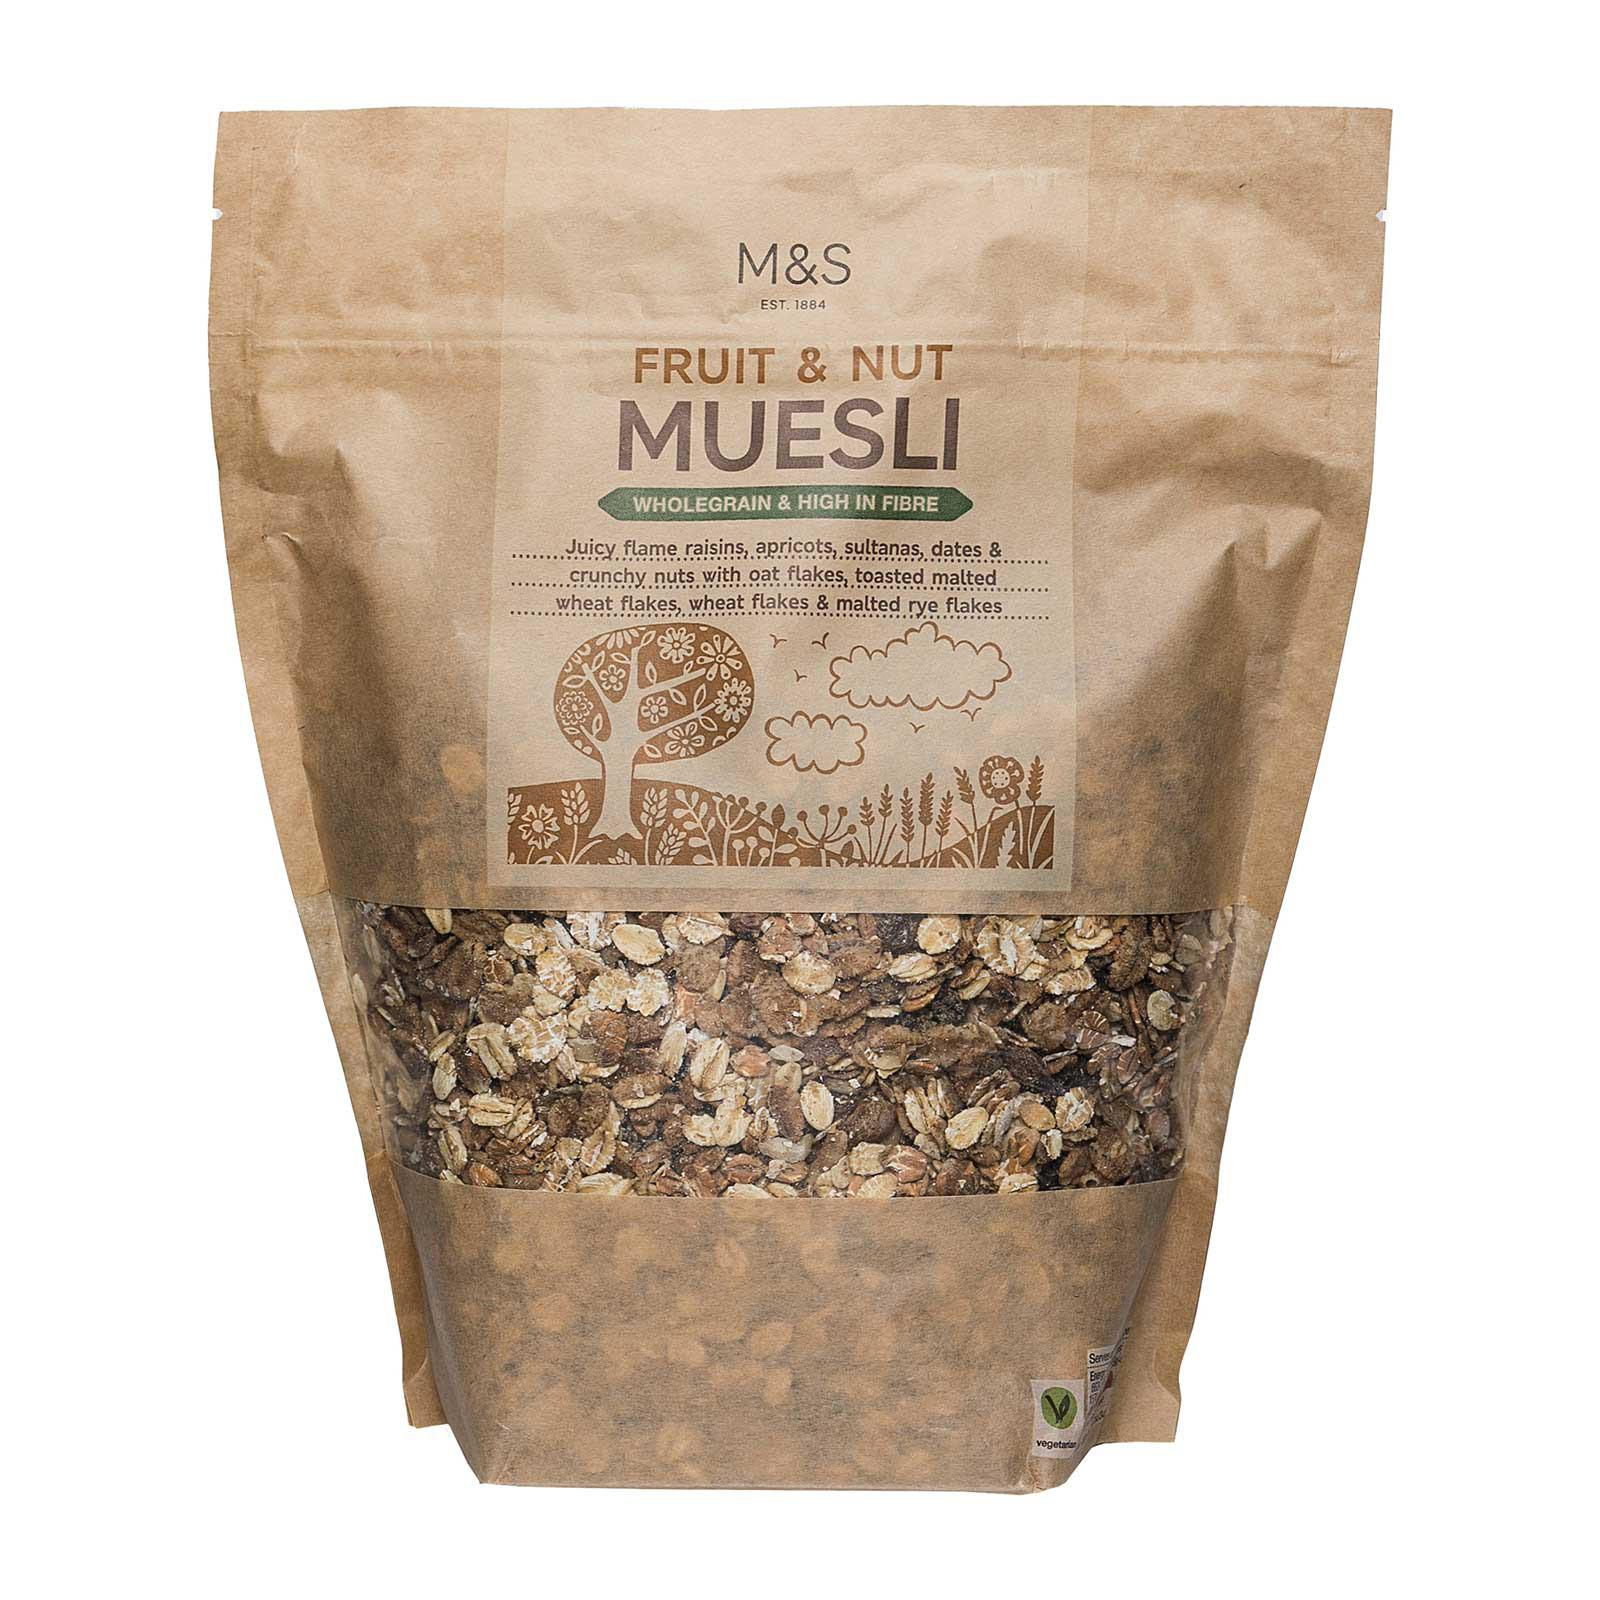 Marks & Spencer Fruit and Nut Muesli